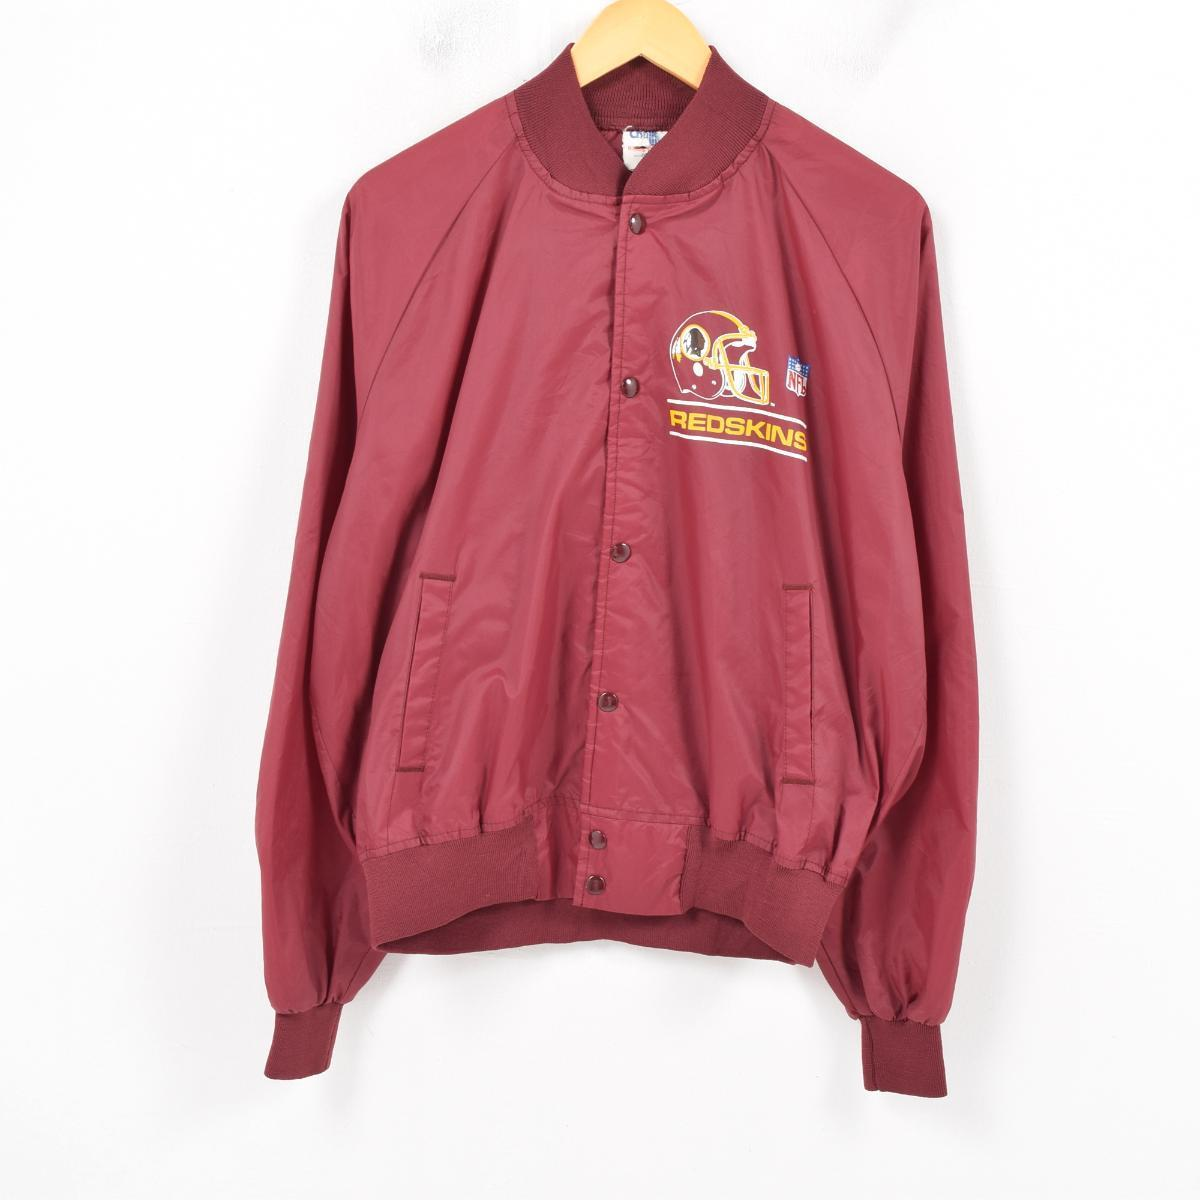 more photos c78a1 cf97d Men L vintage /wax9864 in the 80s made in CHALK LINE NFL WASHINGTON  REDSKINS Washington Redskins nylon award jacket Award jacket USA